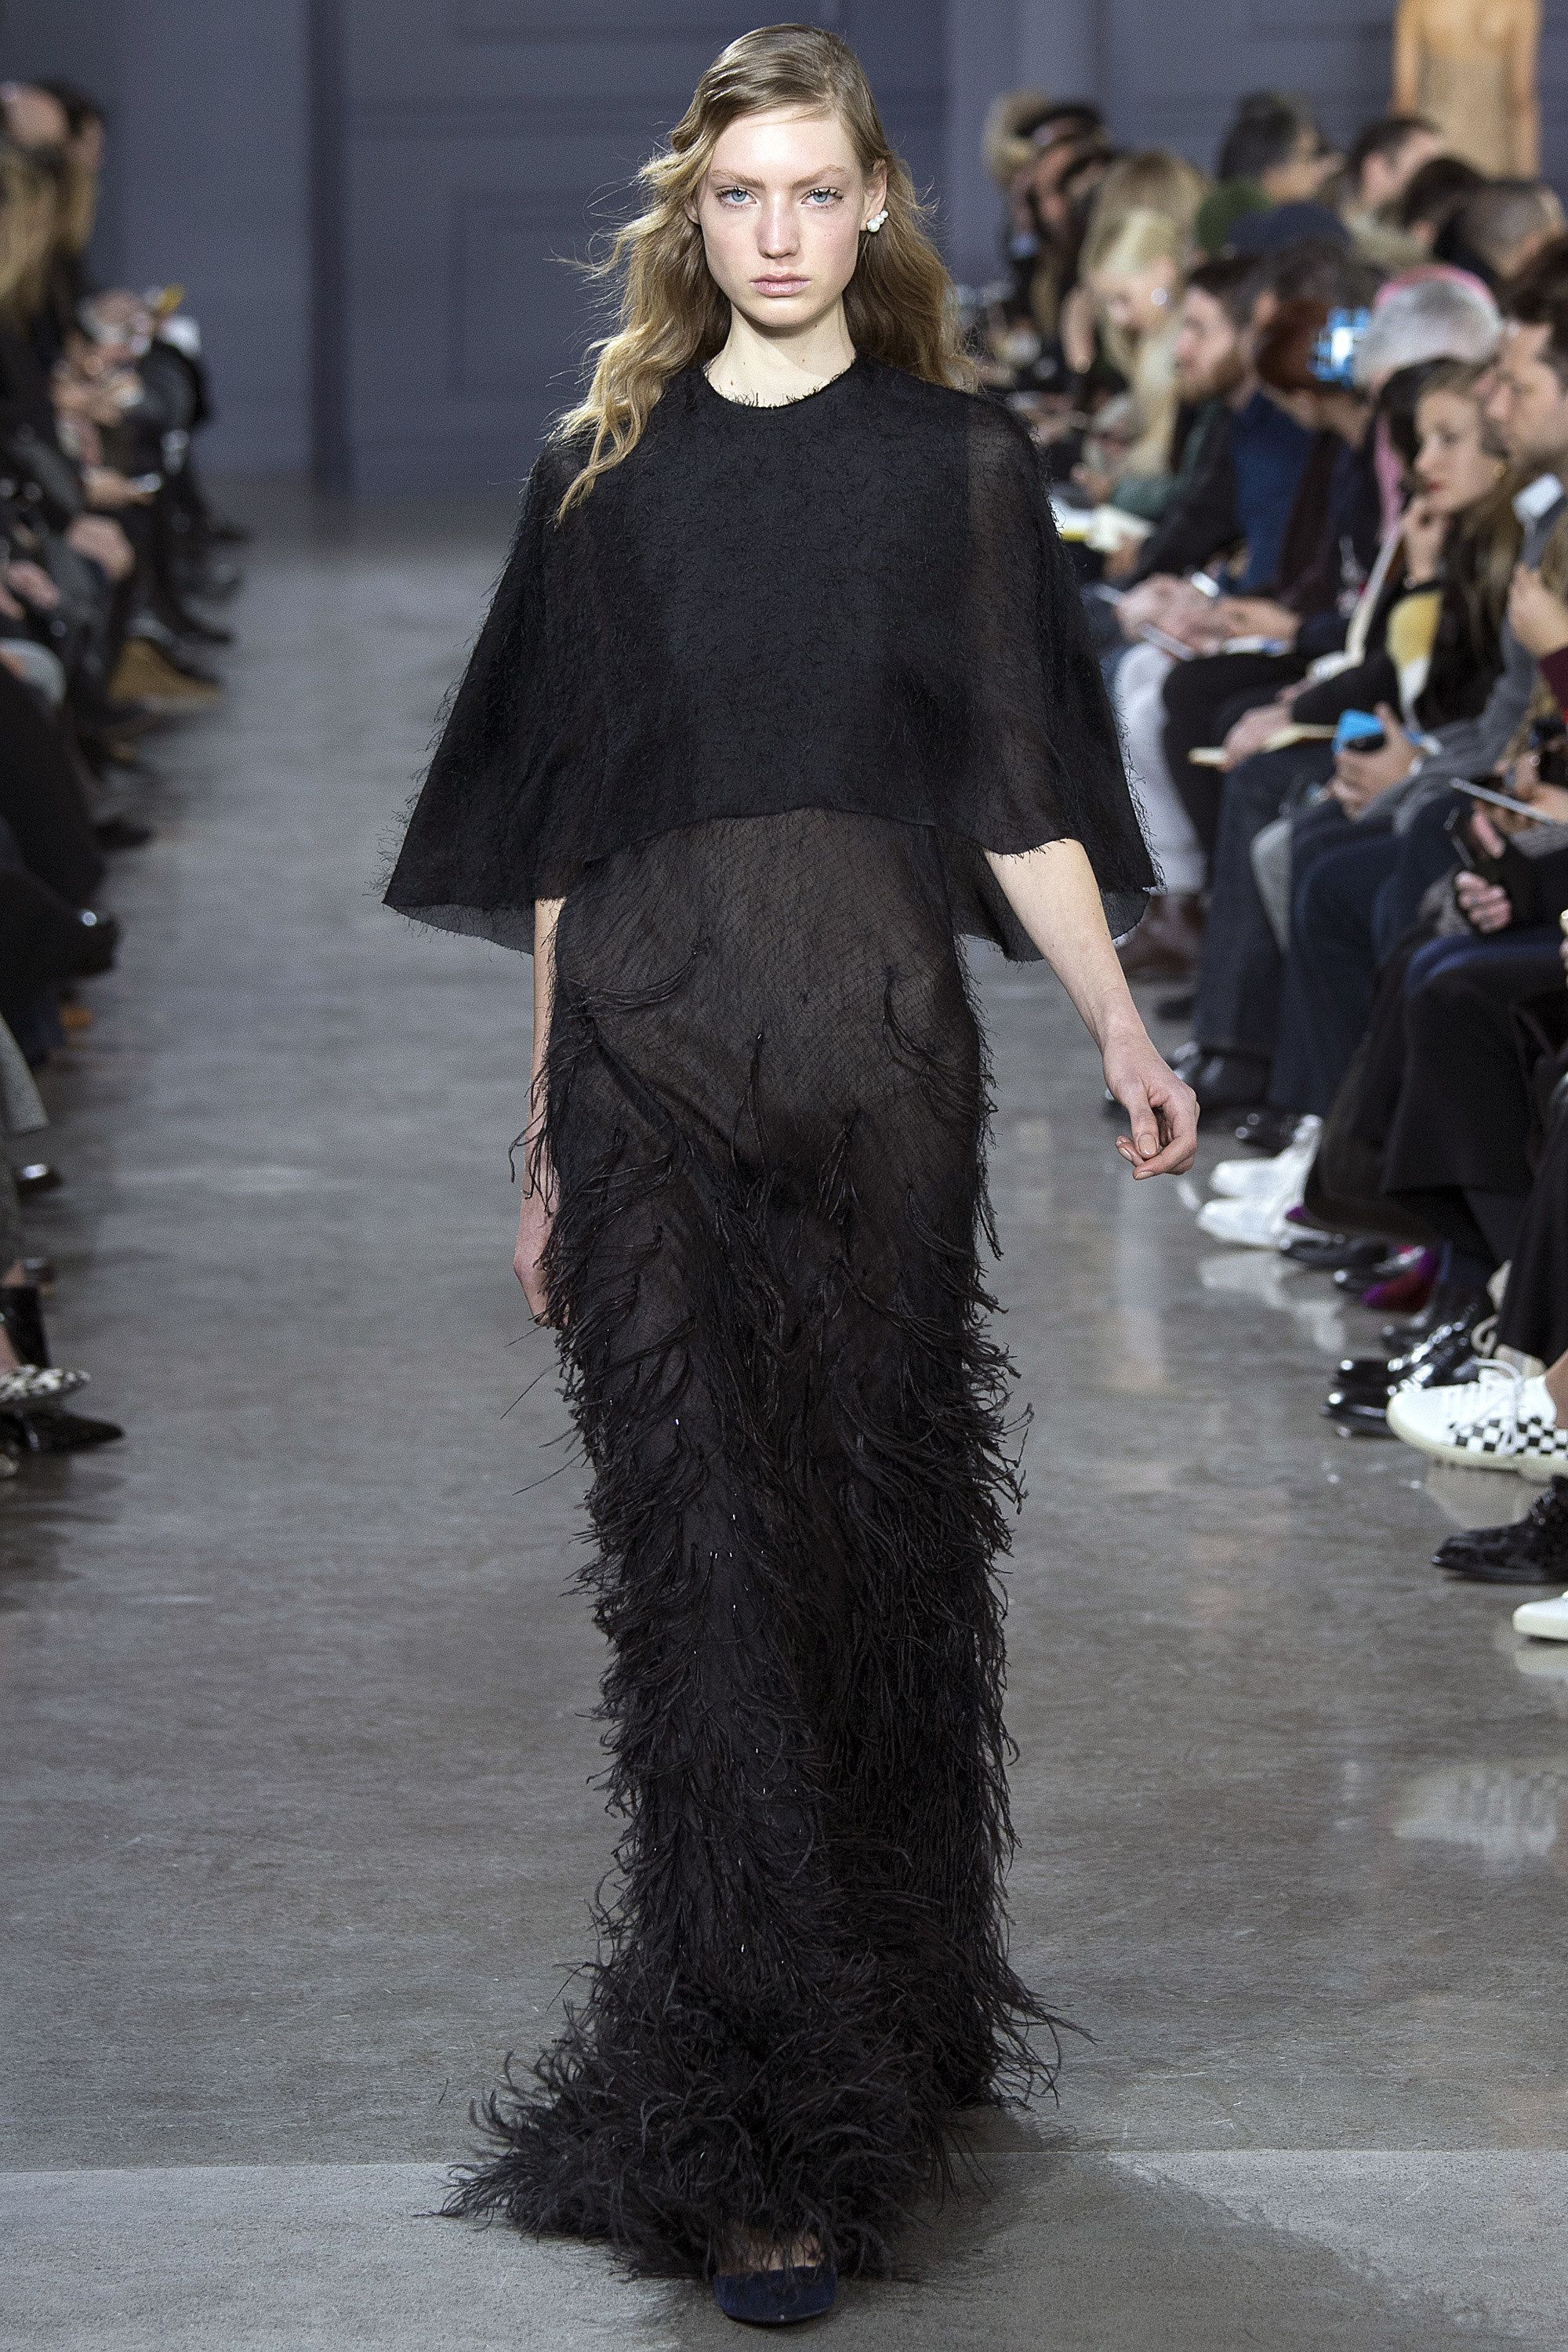 Jason Wu Collection Fall 2016 Ready to Wear Fashion Show in